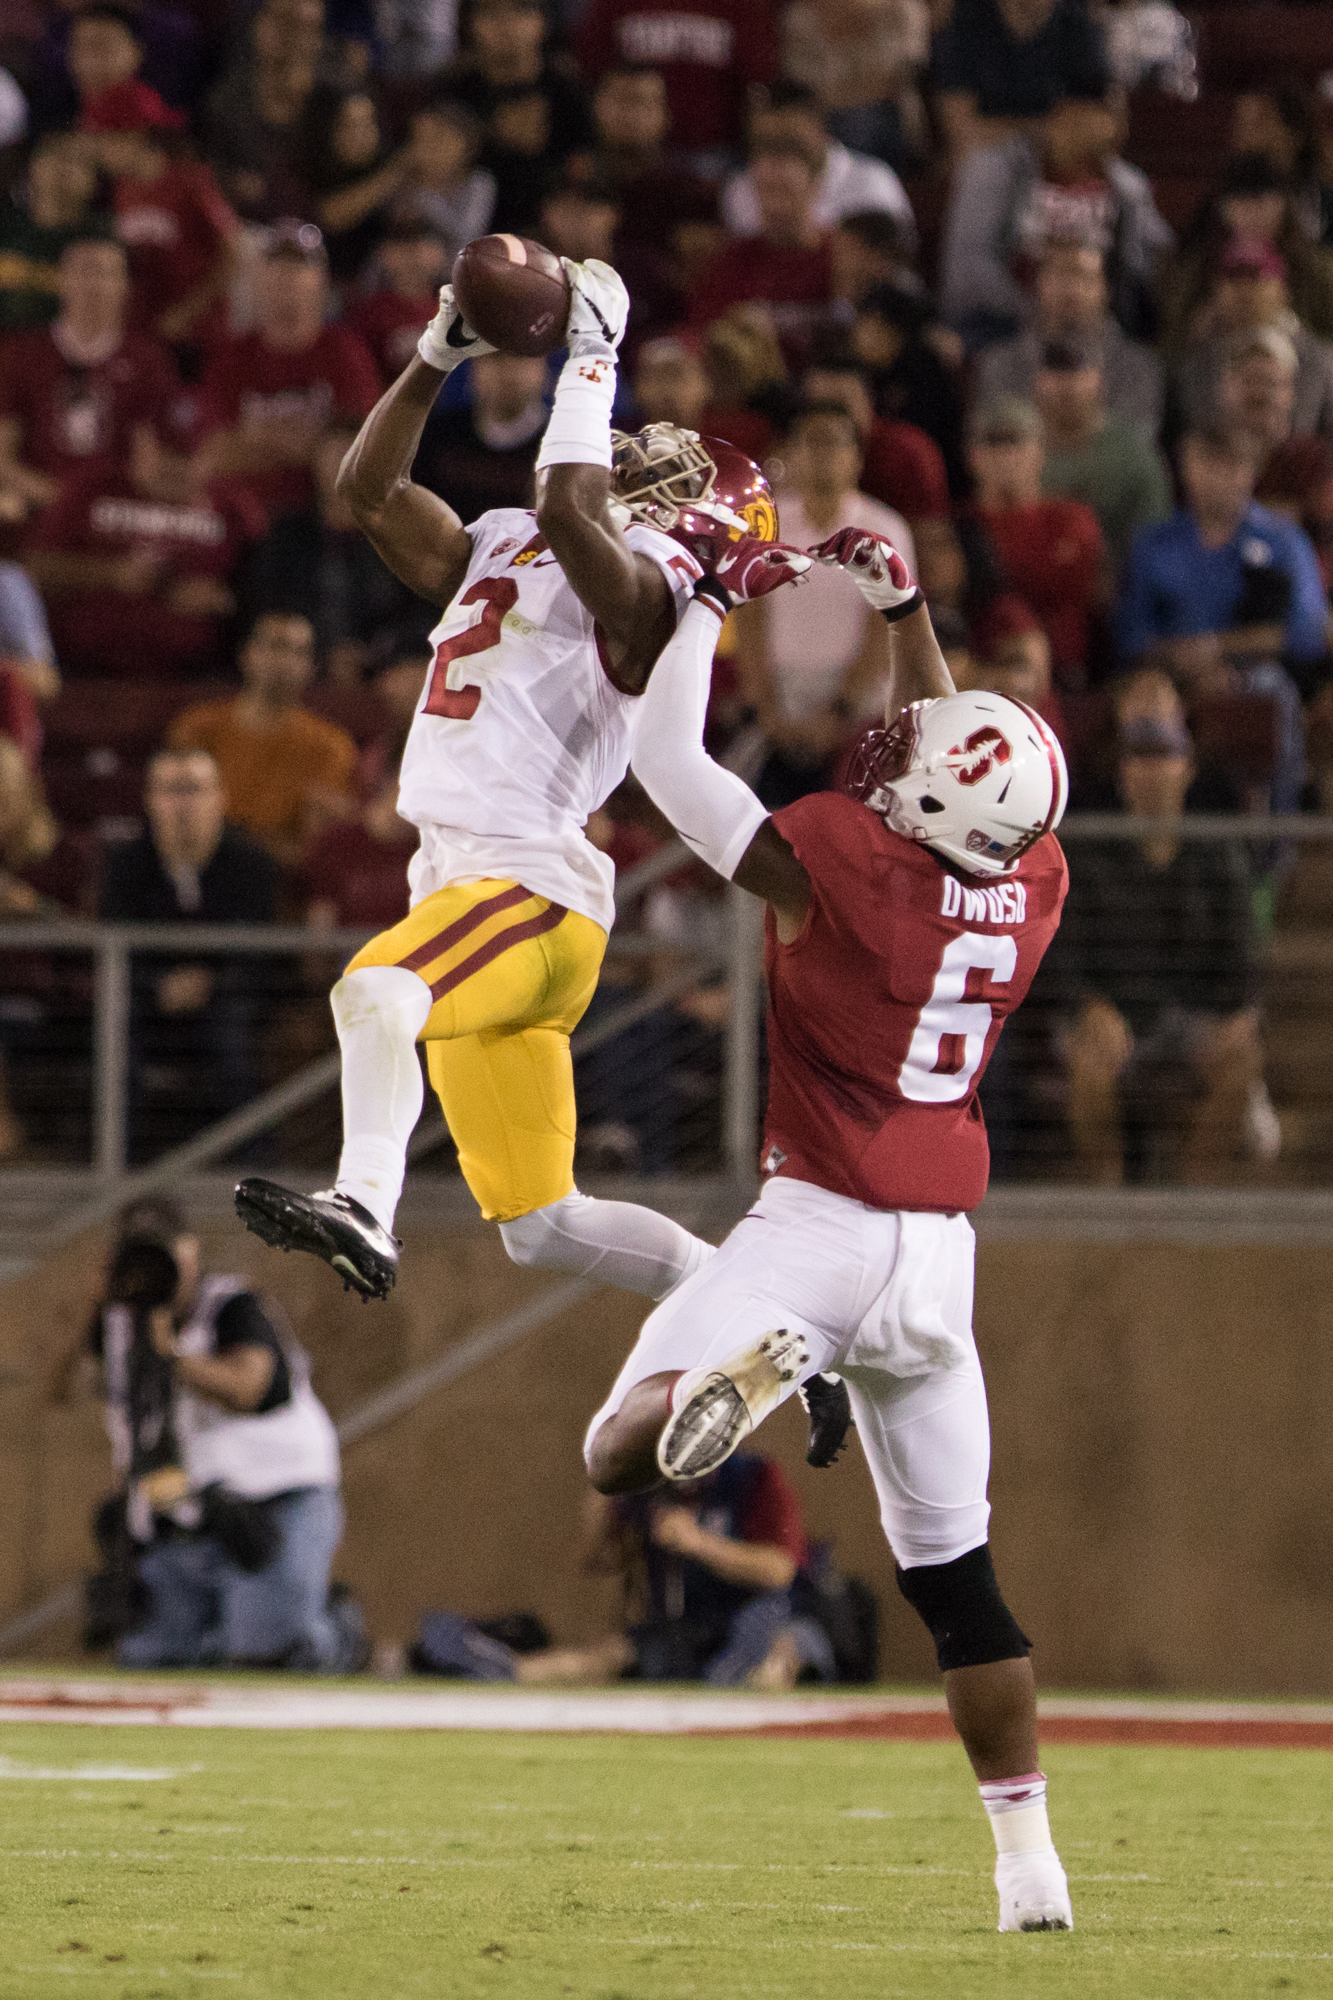 Nick Entin | Daily Trojan Adoree' Jackson leaps to intercept a pass intended for Stanford's Francis Owusu.